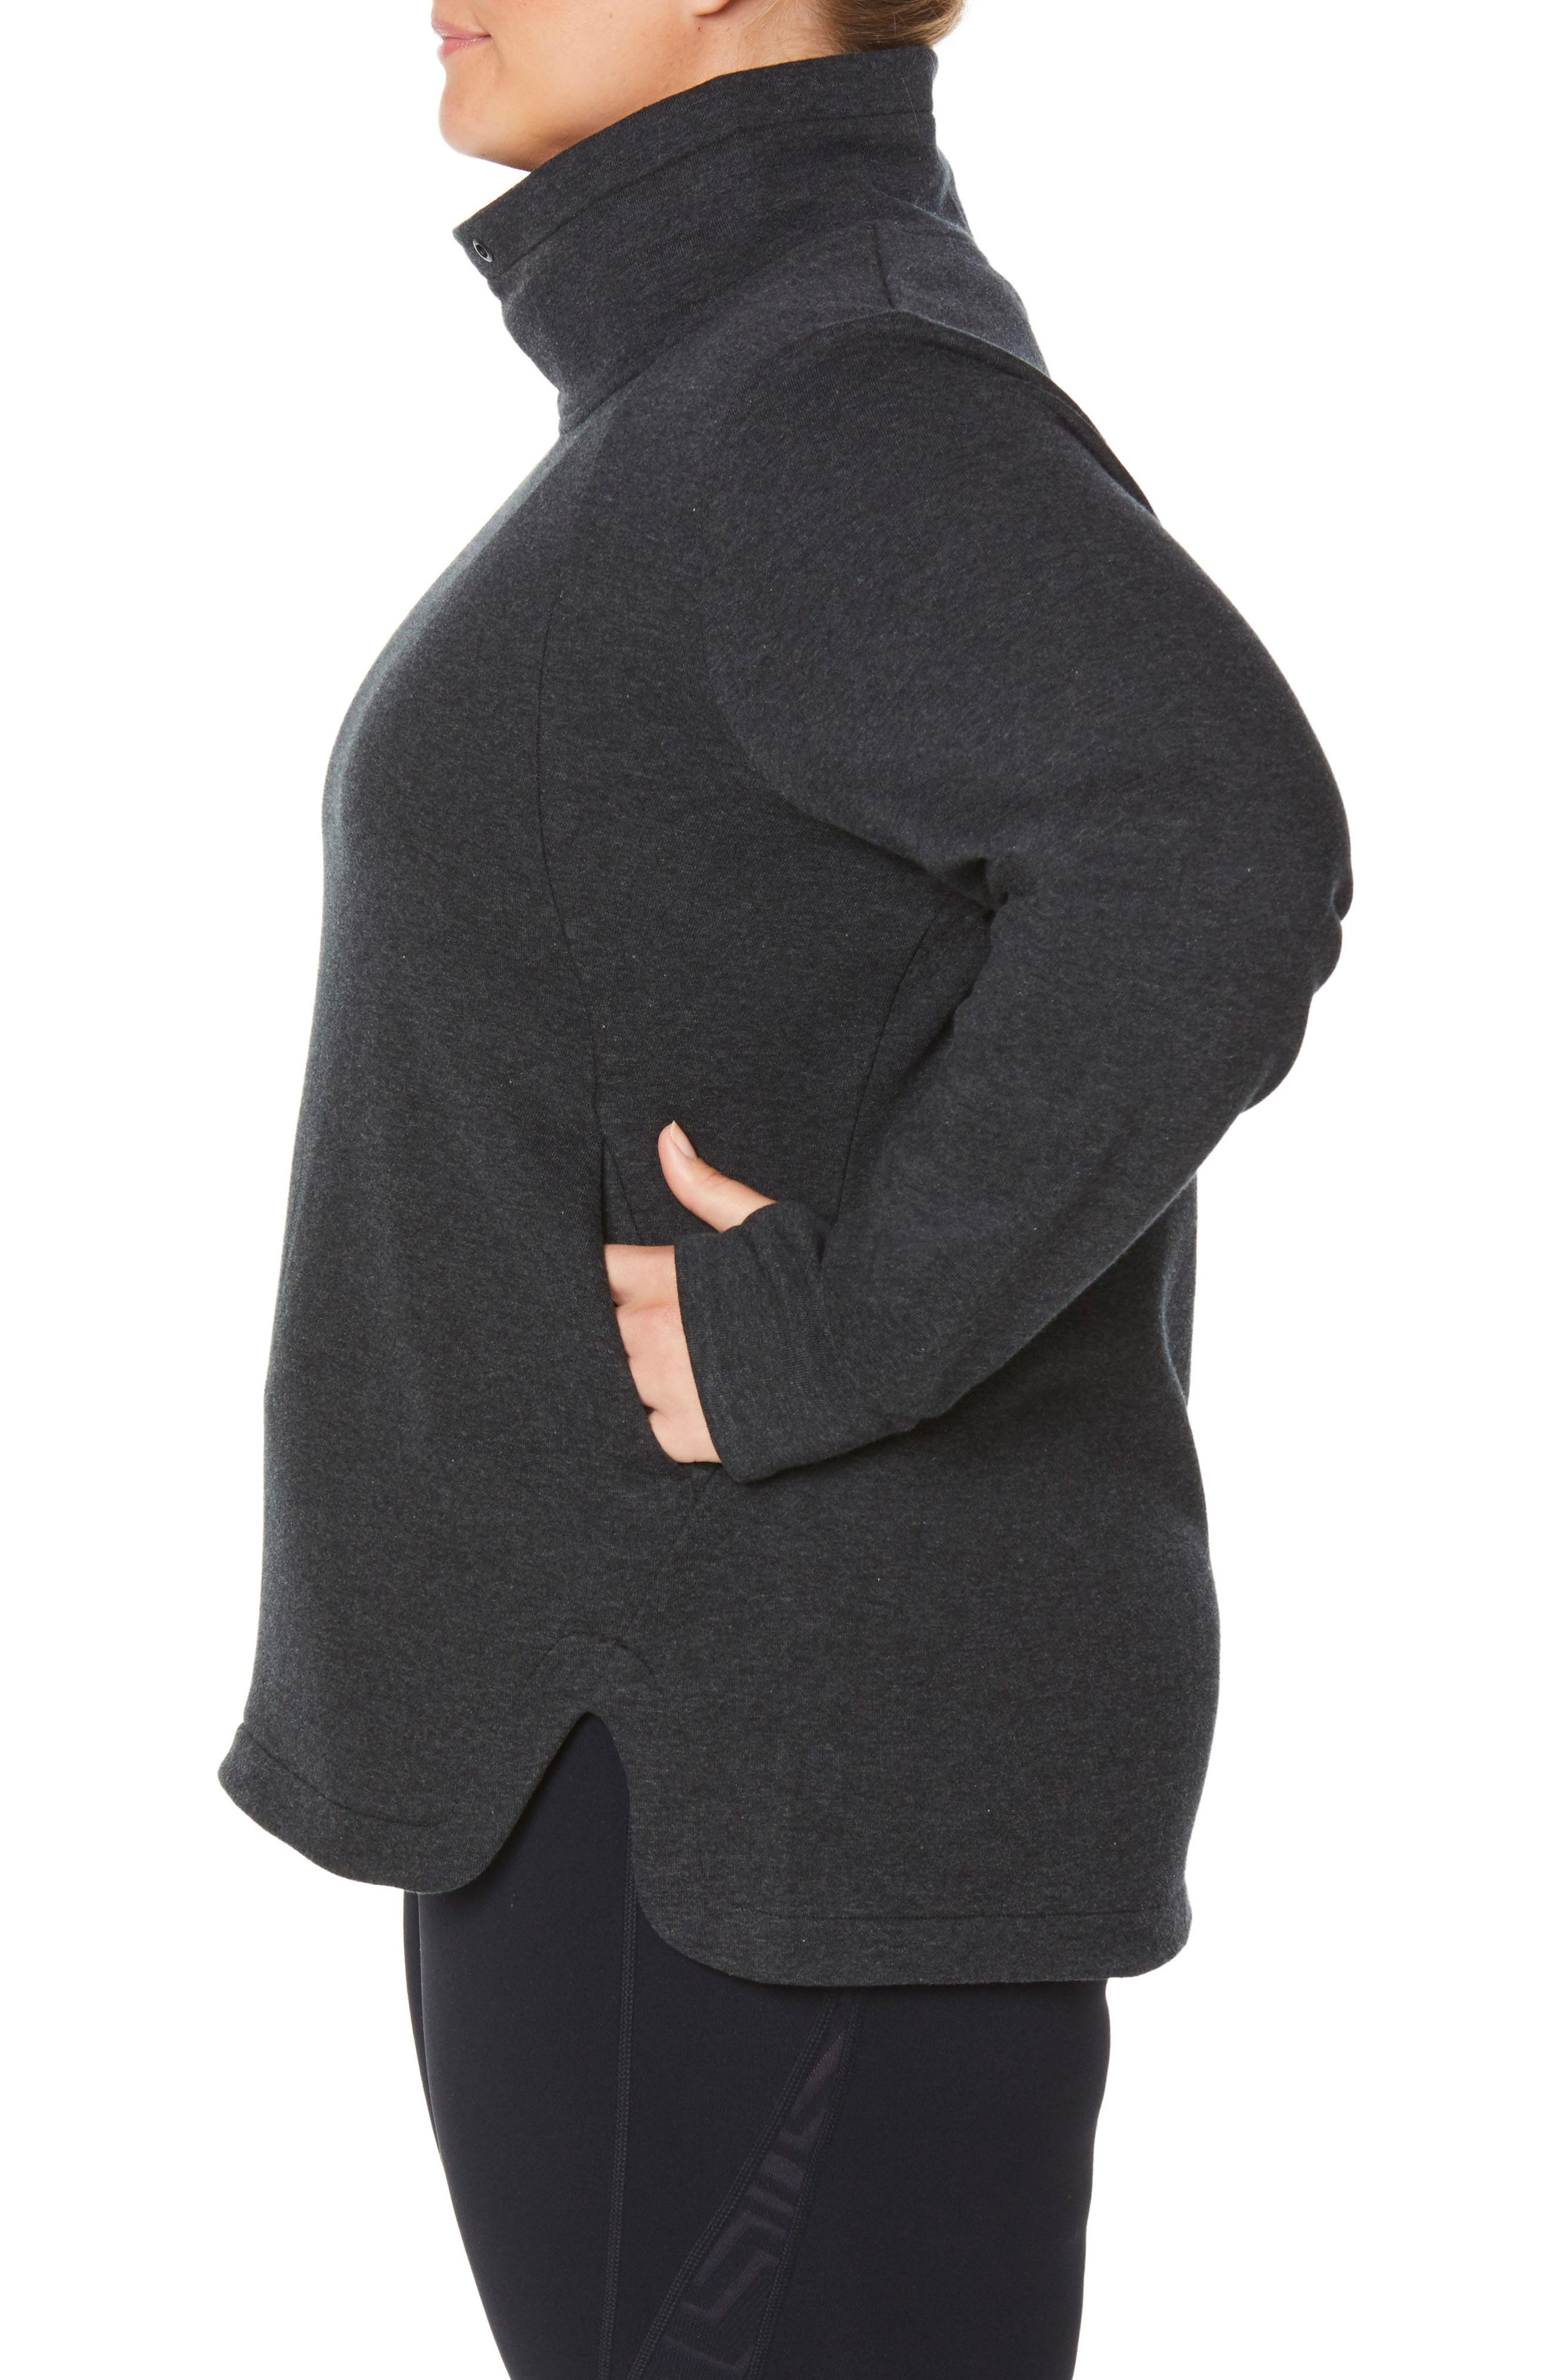 Saturday Mock Neck Pullover,                             Alternate thumbnail 3, color,                             CHARCOAL BLACK